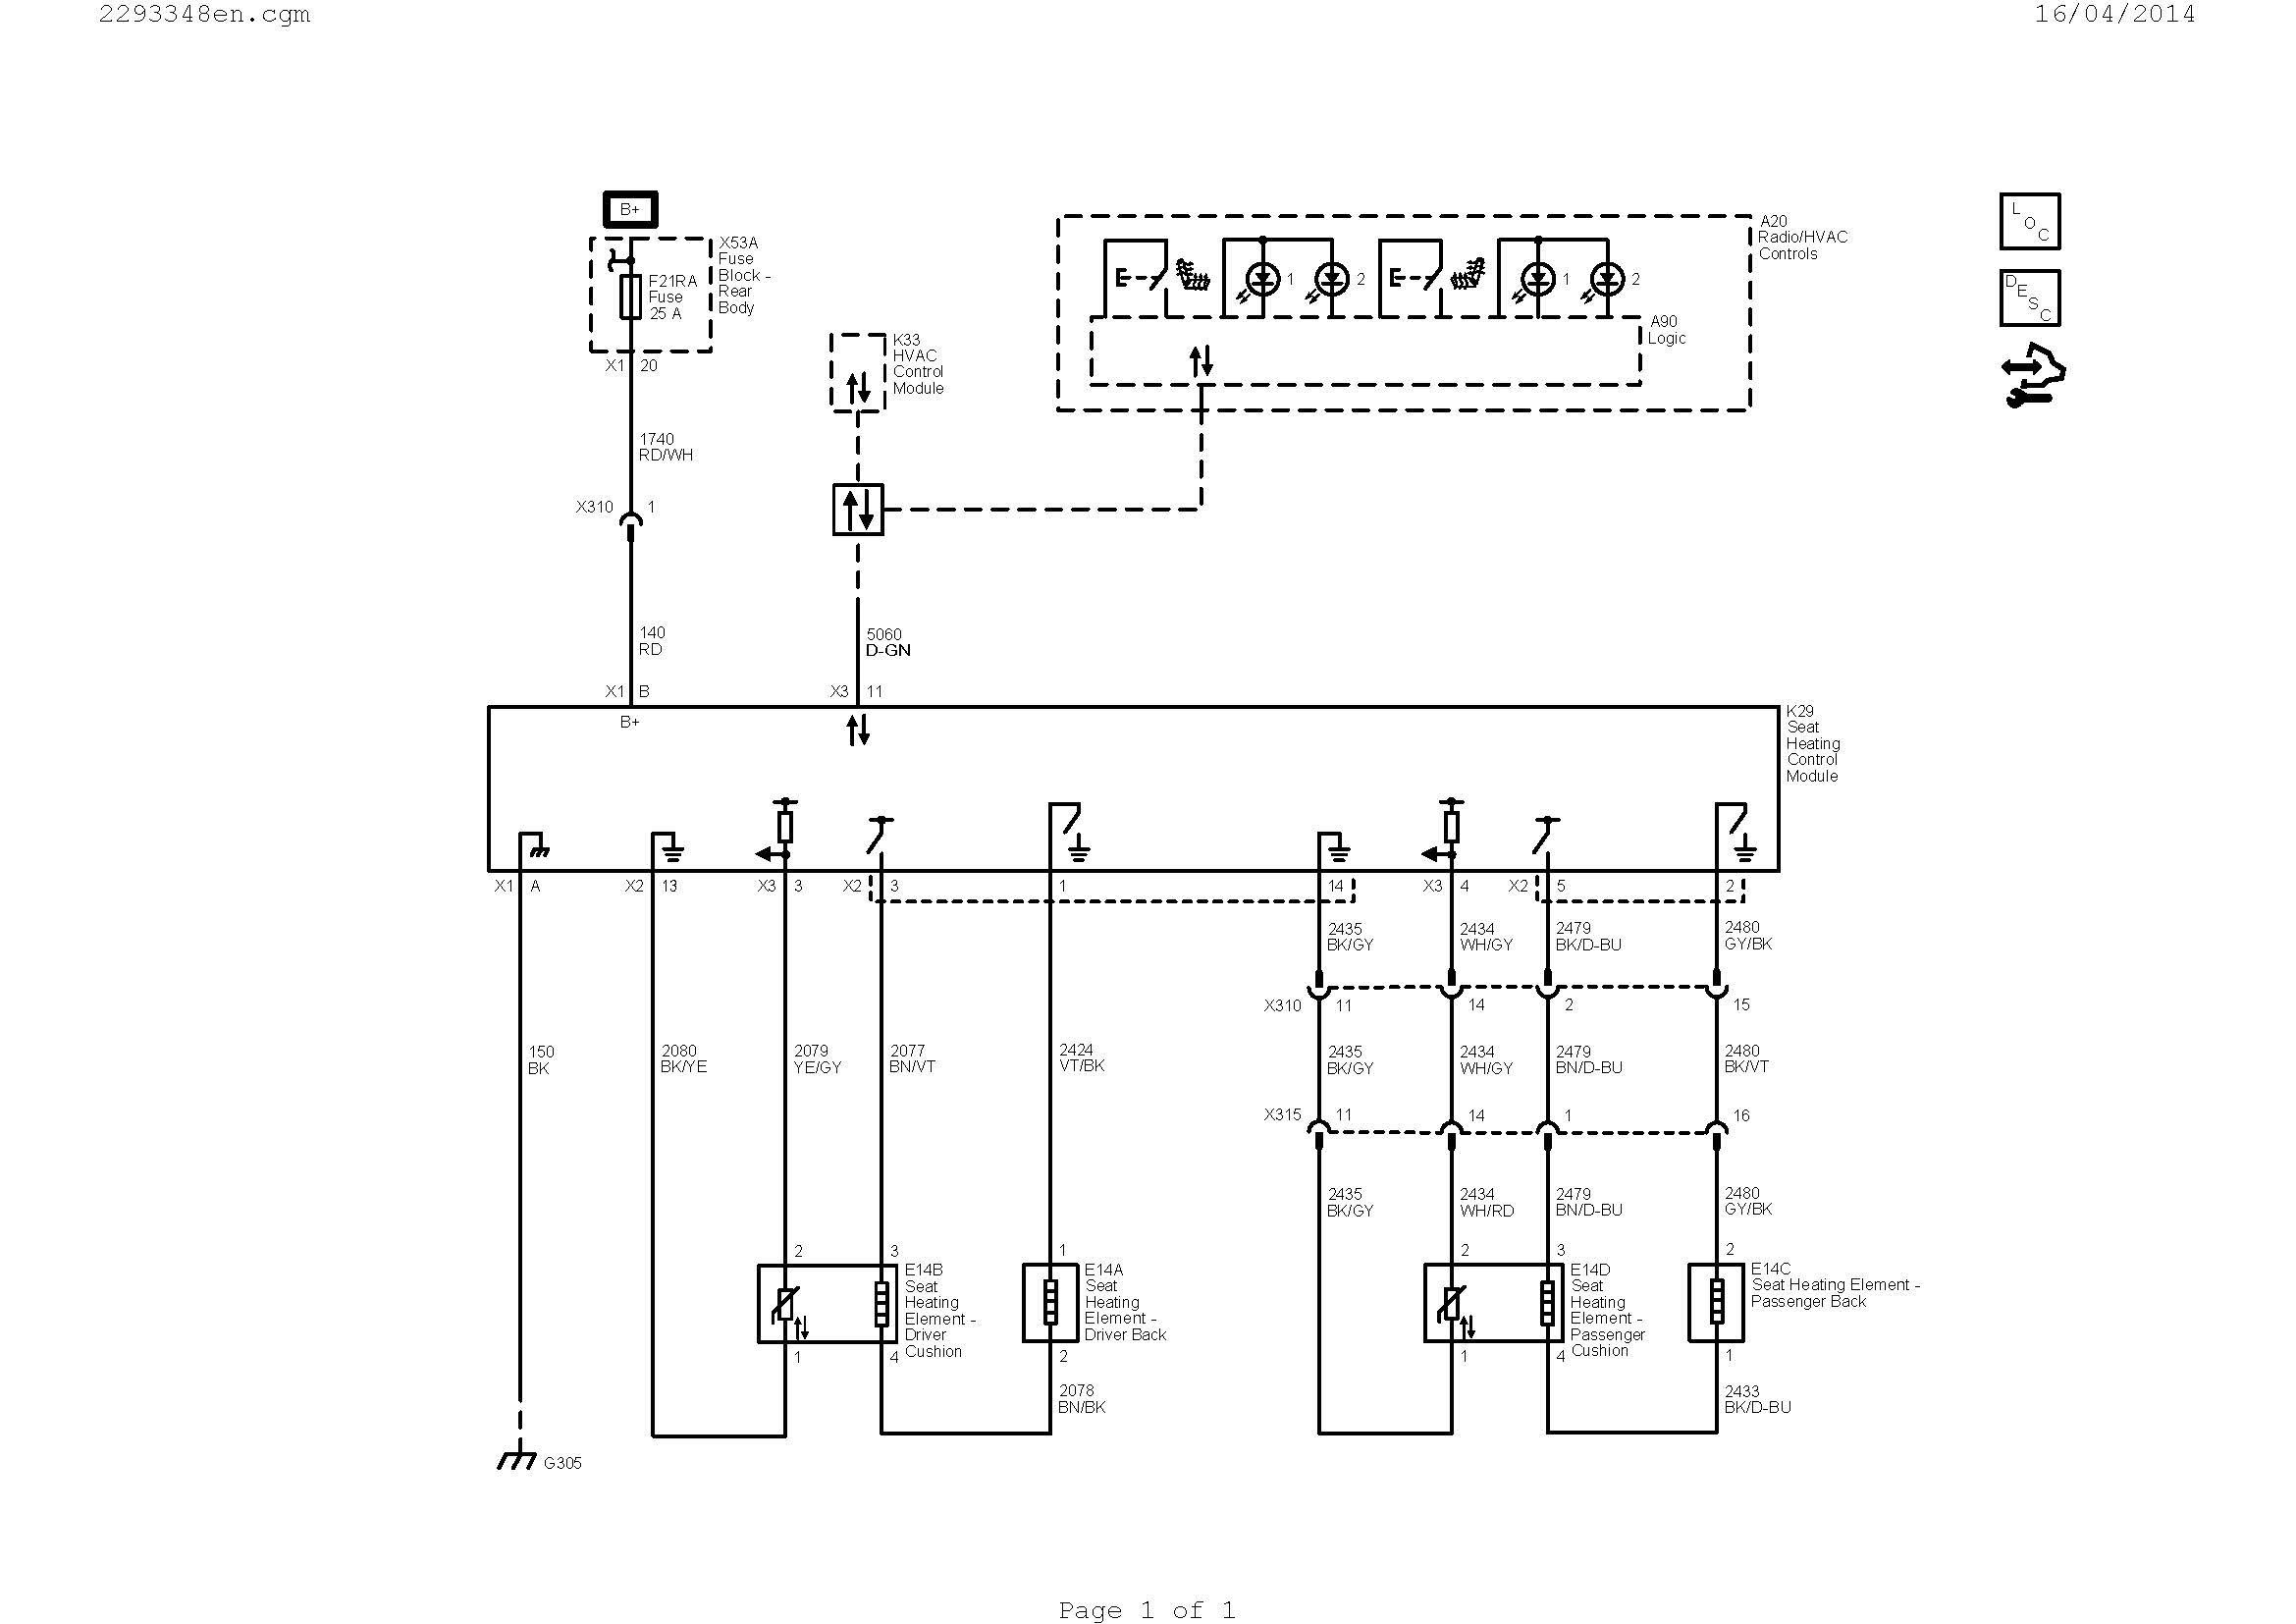 led driver wiring diagram Download-house thermostat wiring diagram Download Wiring A Ac Thermostat Diagram New Wiring Diagram Ac Valid DOWNLOAD Wiring Diagram 18-t